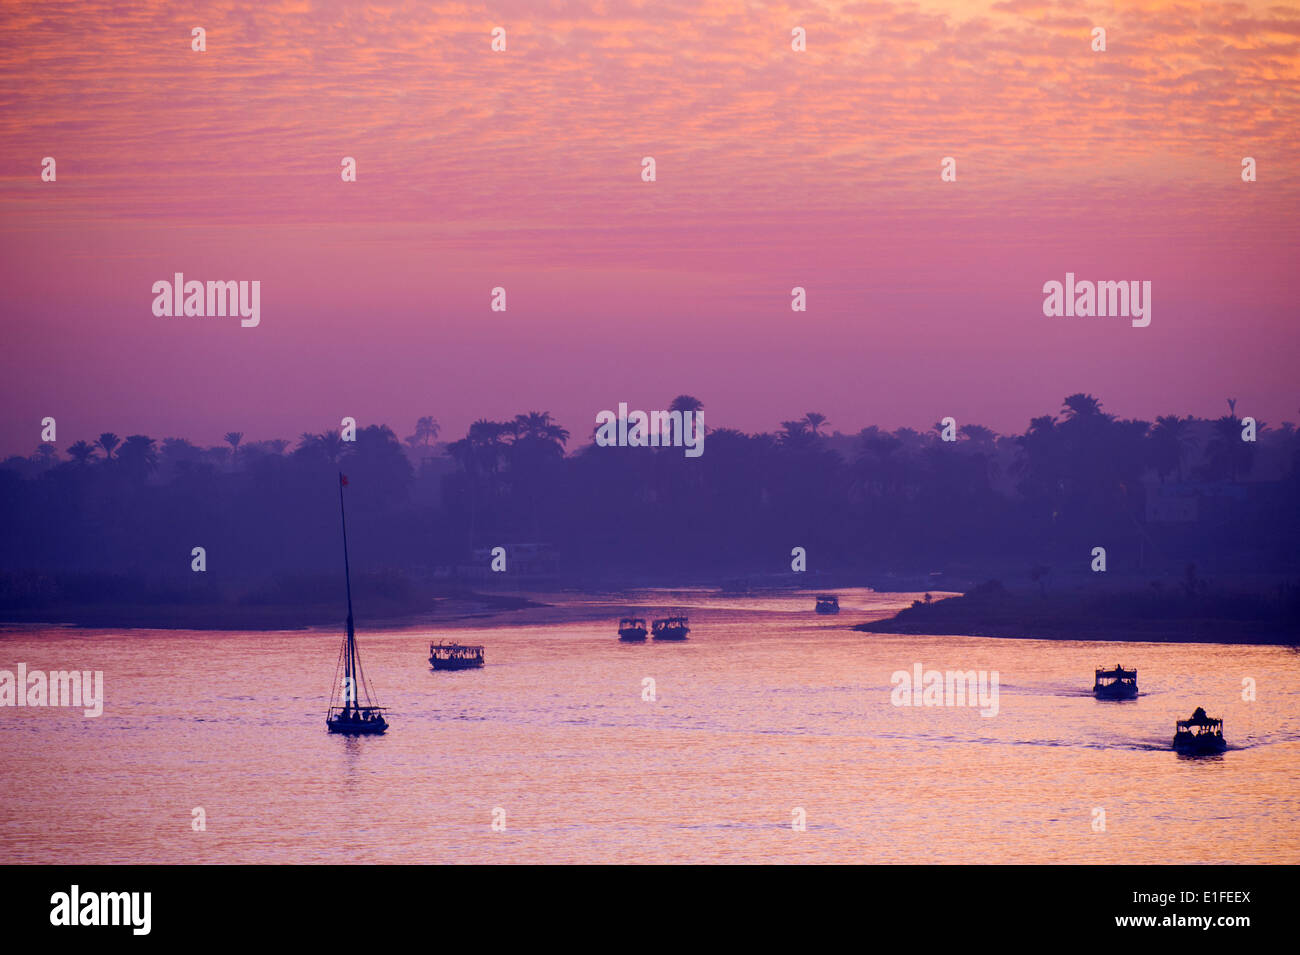 Egypt, Nile Valley, Luxor, sunset on the Nile - Stock Image